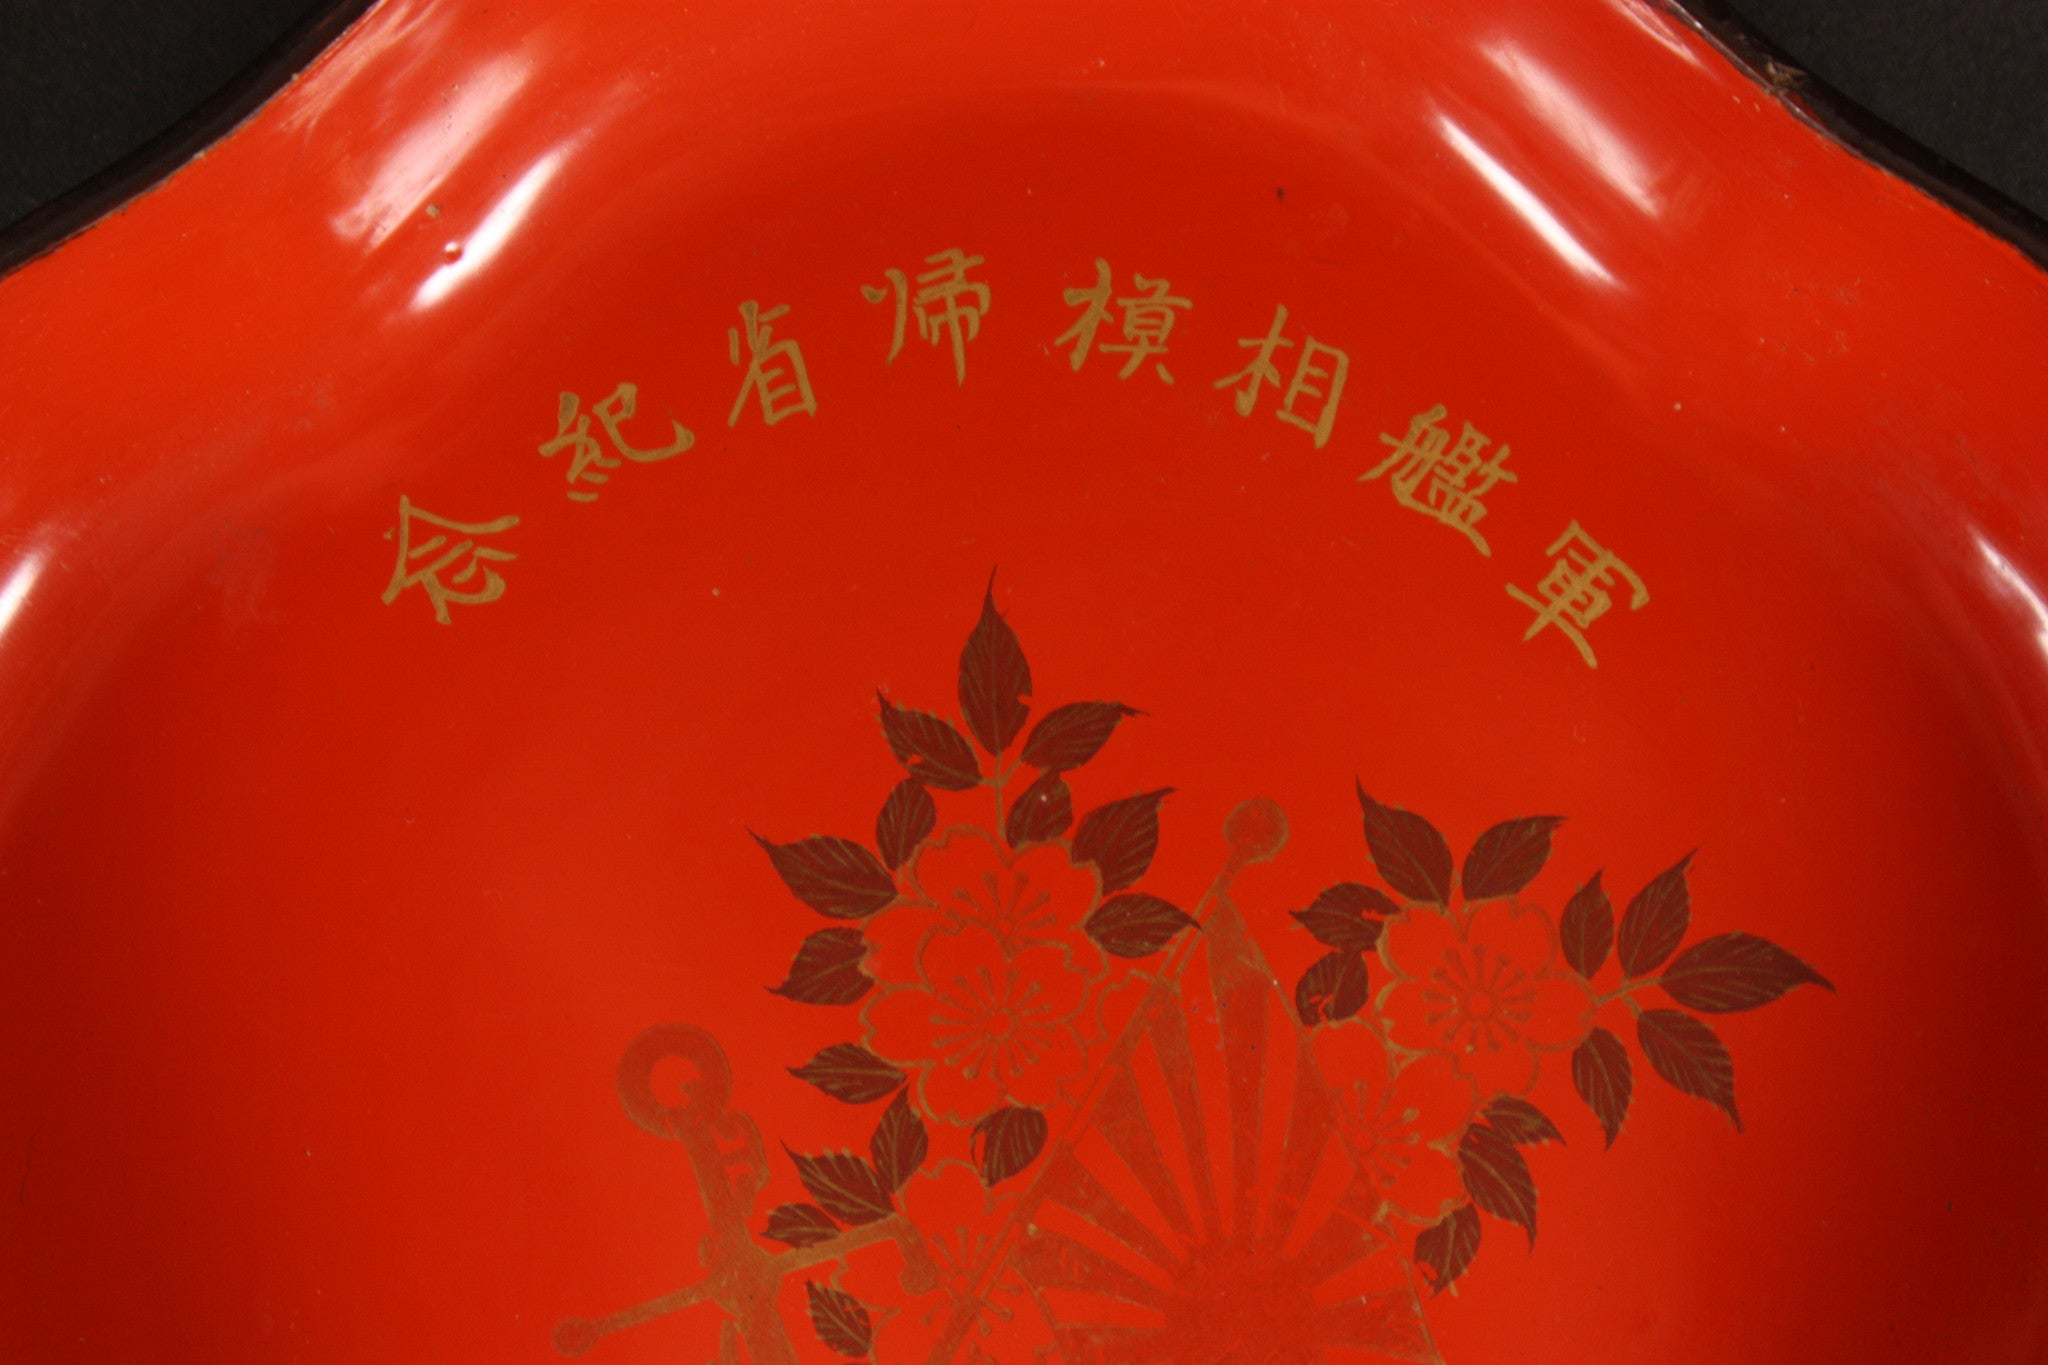 Very Rare Russo Japanese War Battleship Sagami / Peresvet Homecoming Commemoration Lacquer Tray